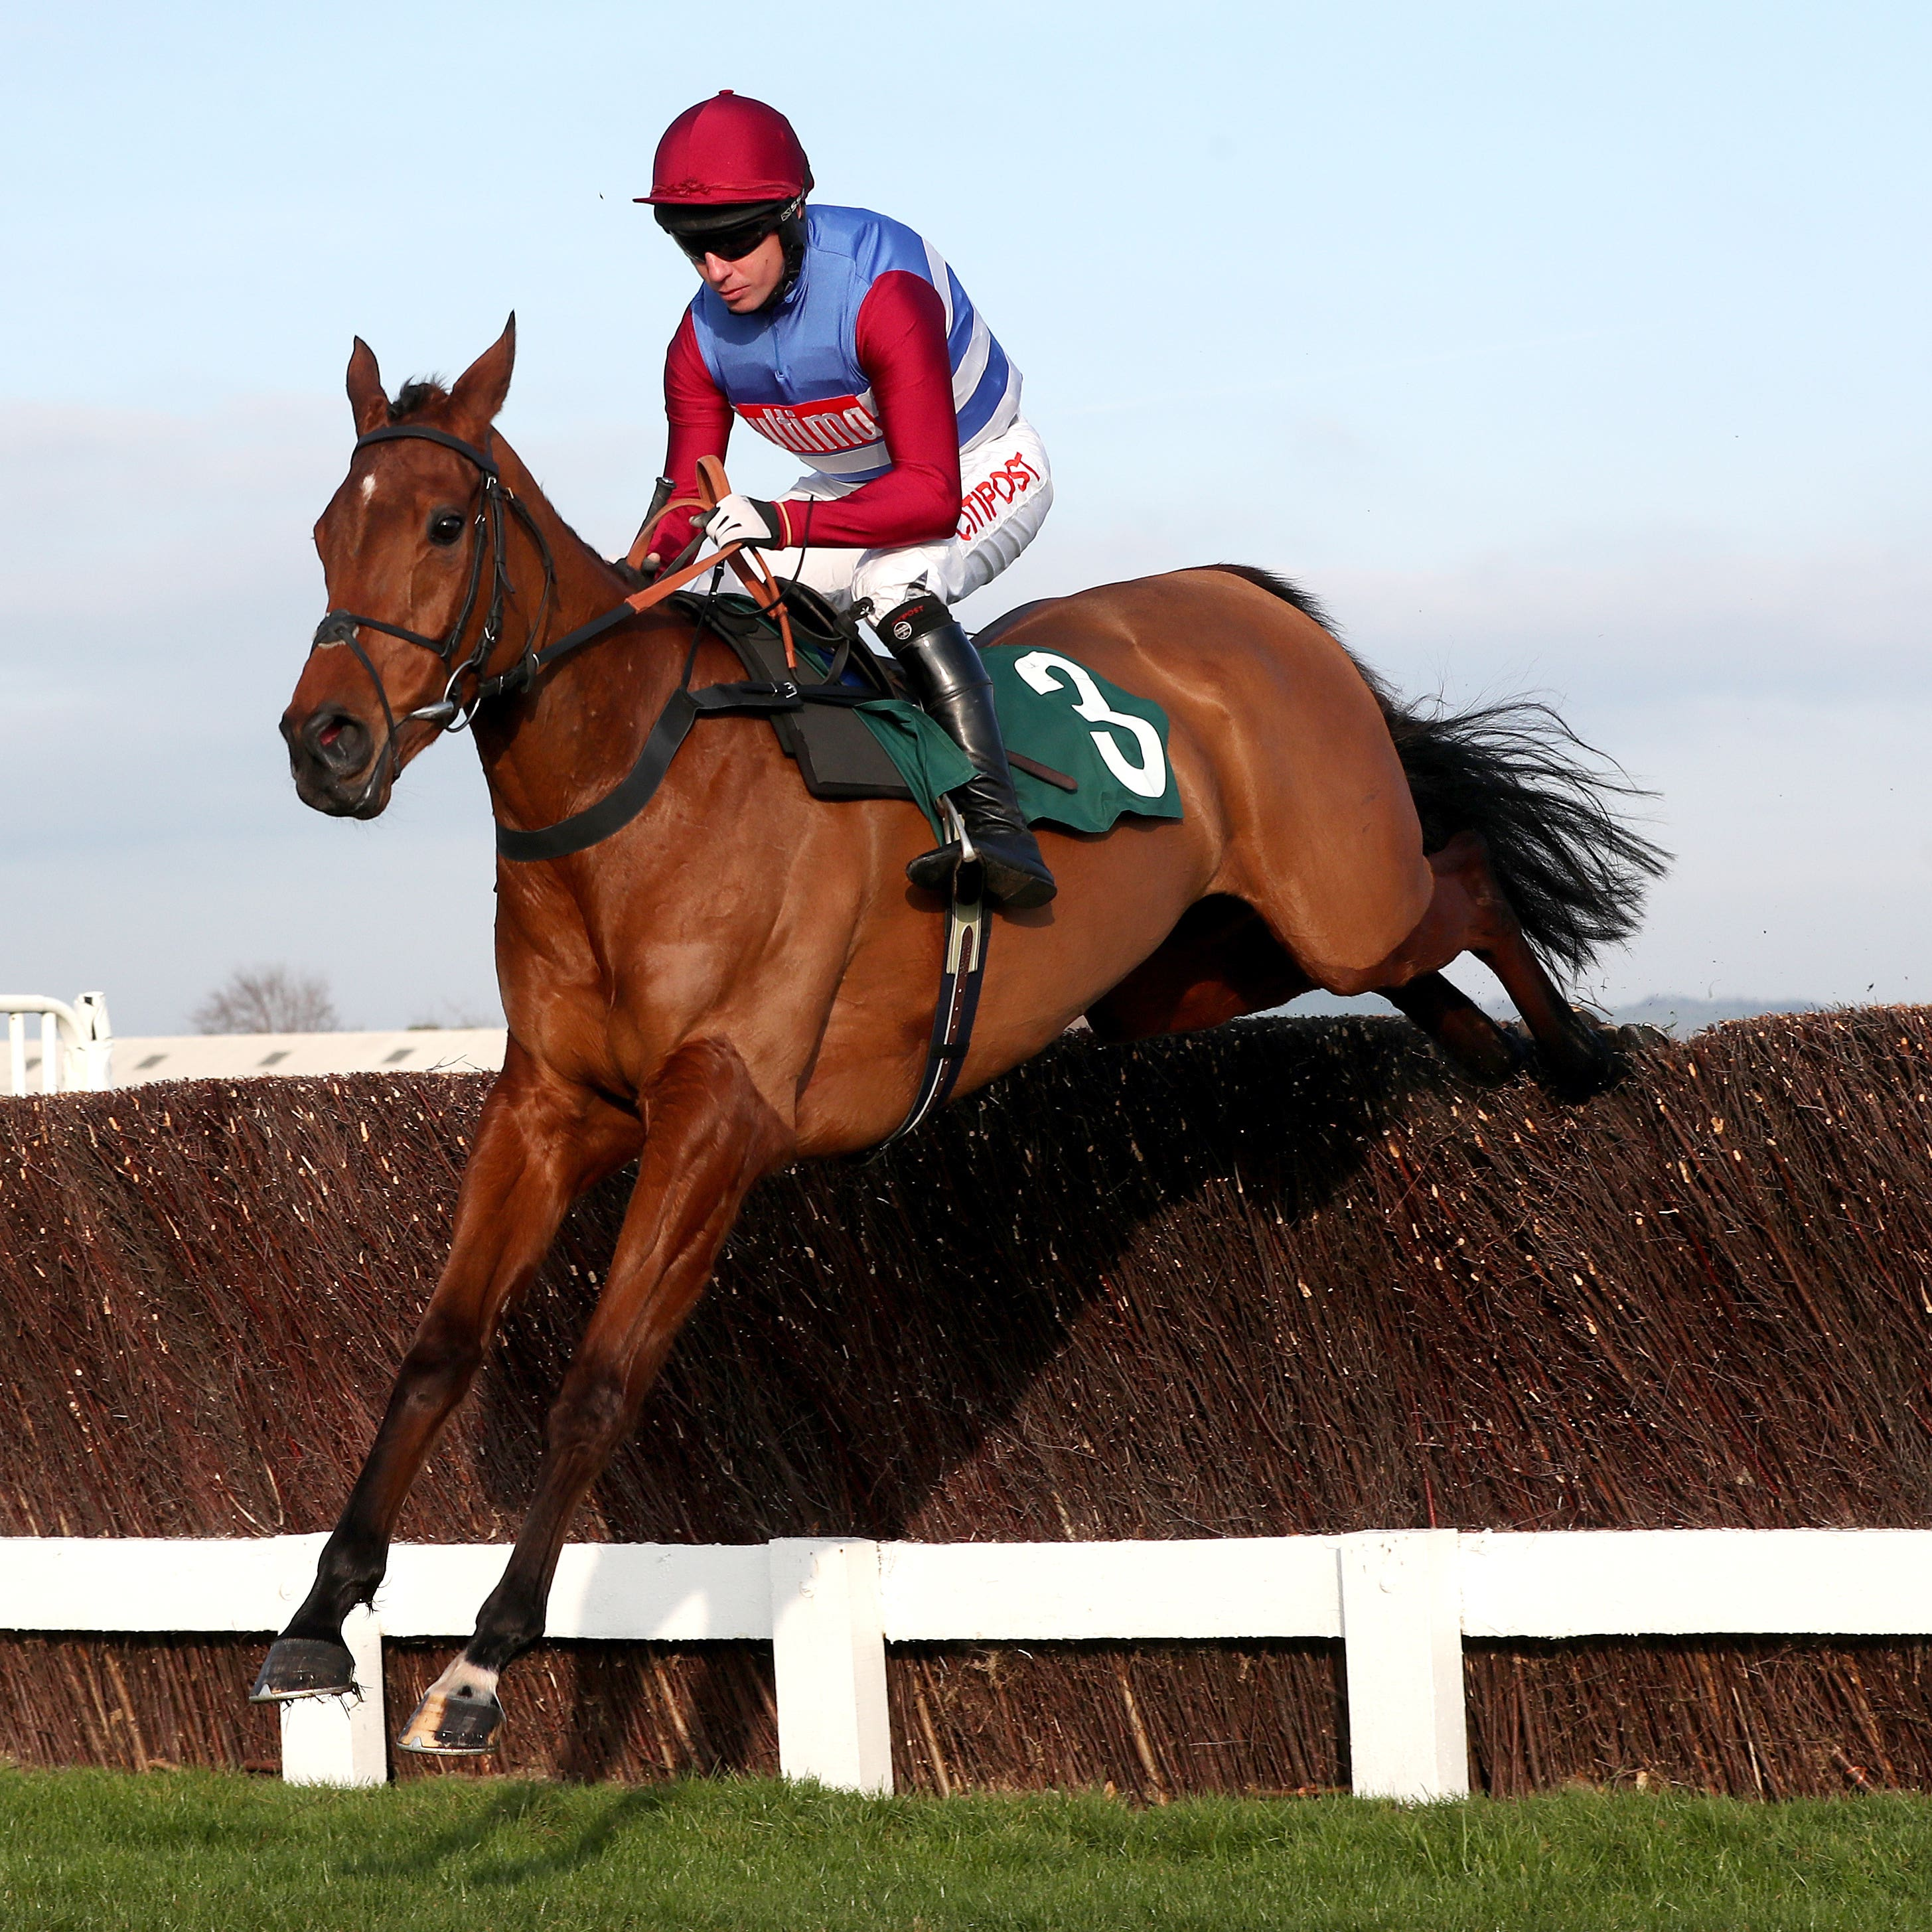 The Worlds End will be aimed at the Sodexo Reynoldstown Novices' Chase at Ascot